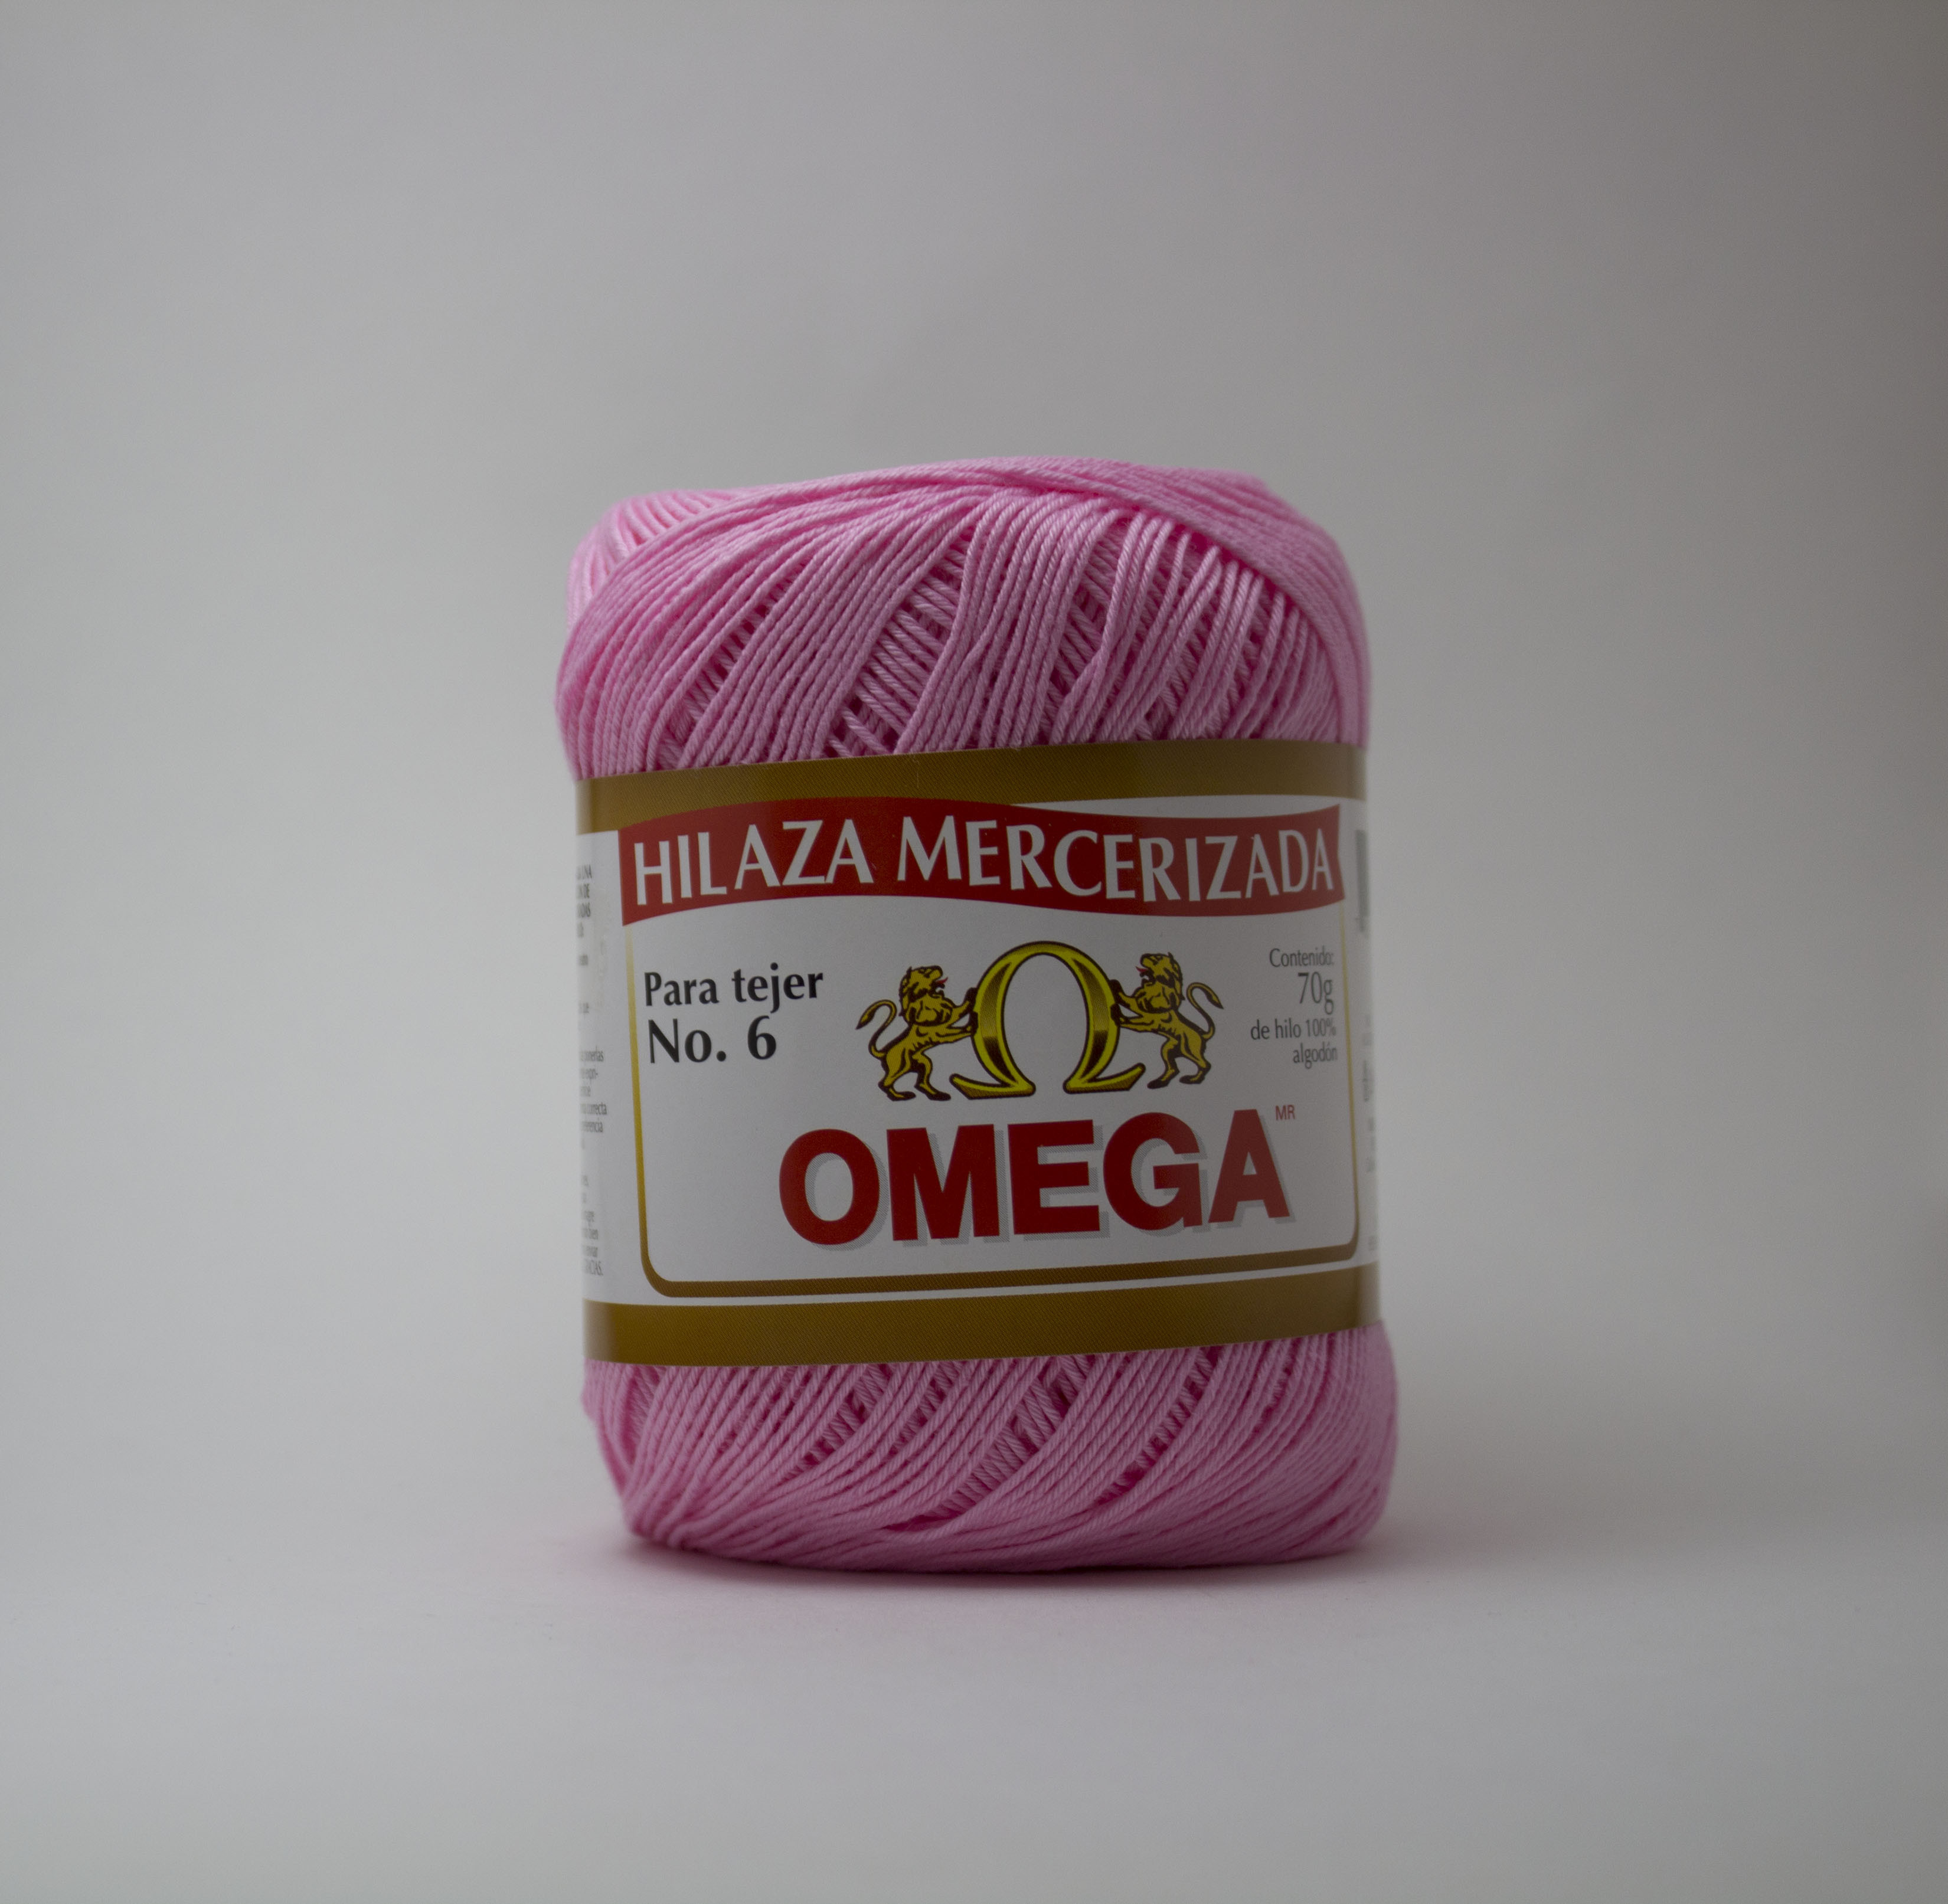 Omega Yarn Inspirational Hilaza Omega Yarns 6 Archives Of Awesome 49 Pictures Omega Yarn